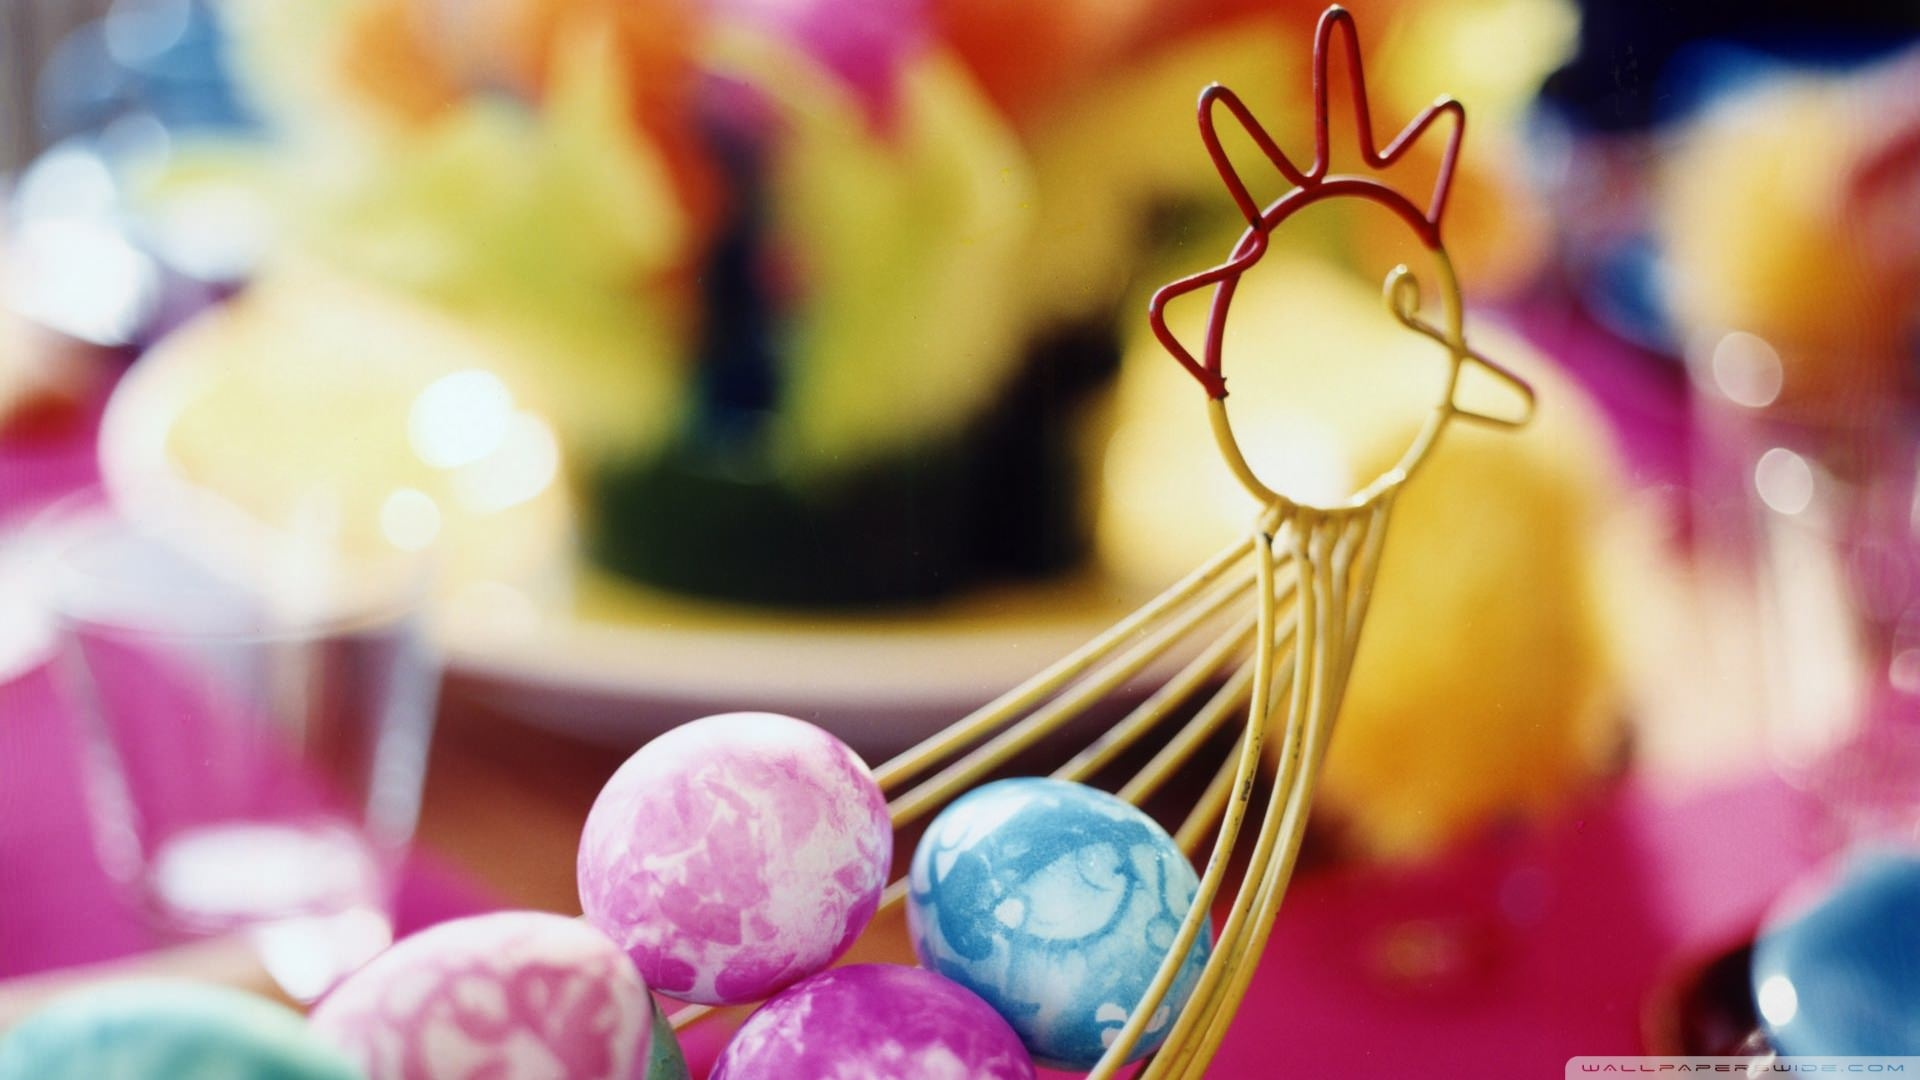 Download Basket Of Easter Eggs wallpaper